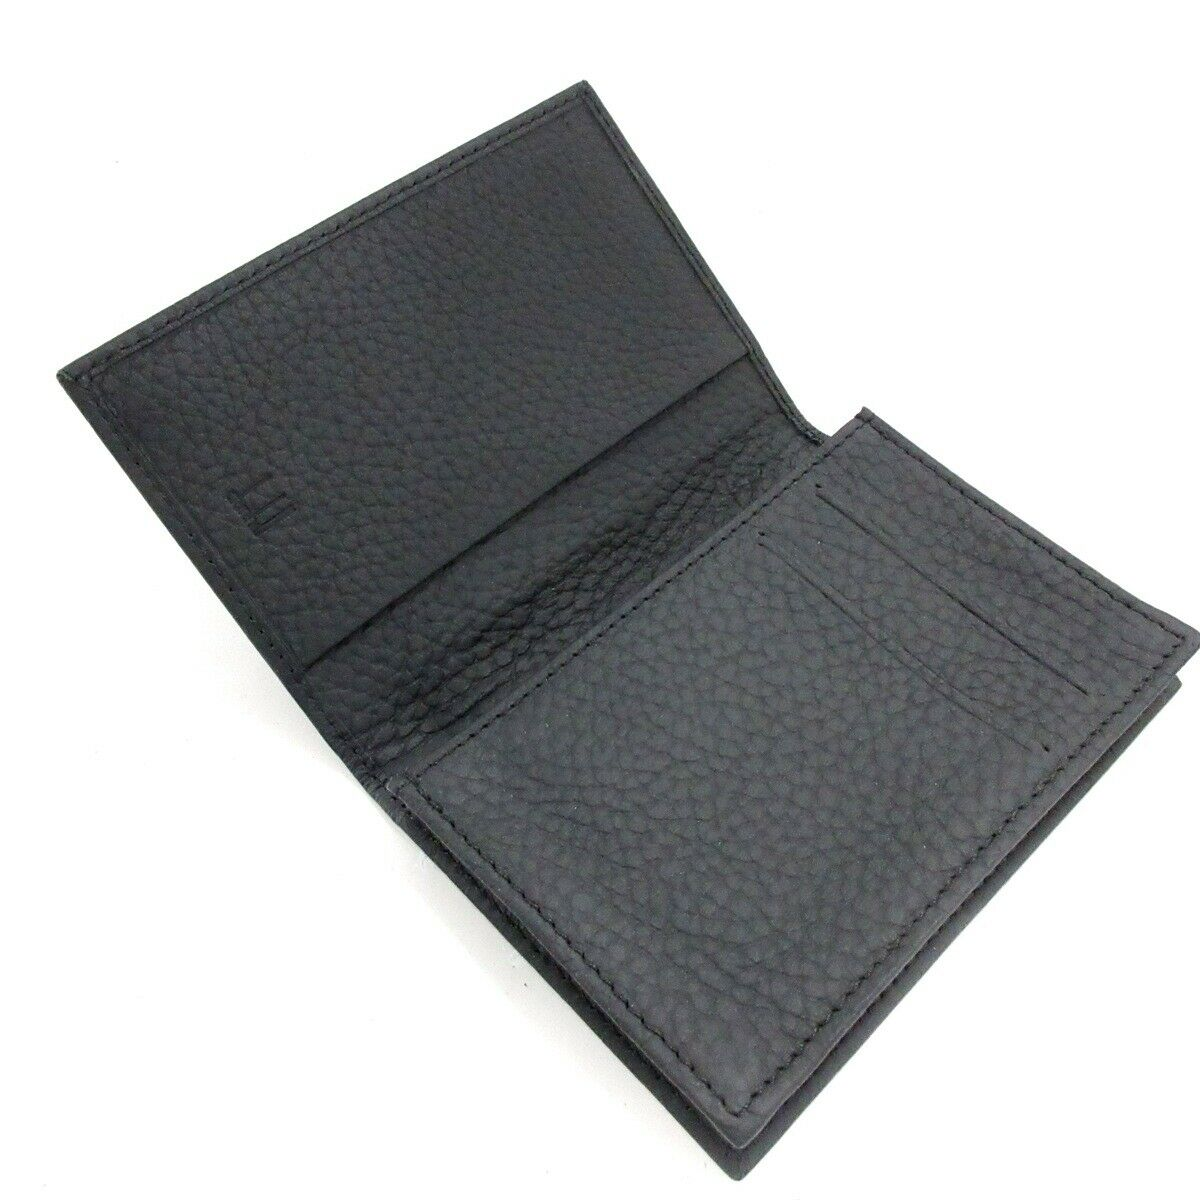 Auth dunhill/ALFREDDUNHILL Black Leather Business Card Holder